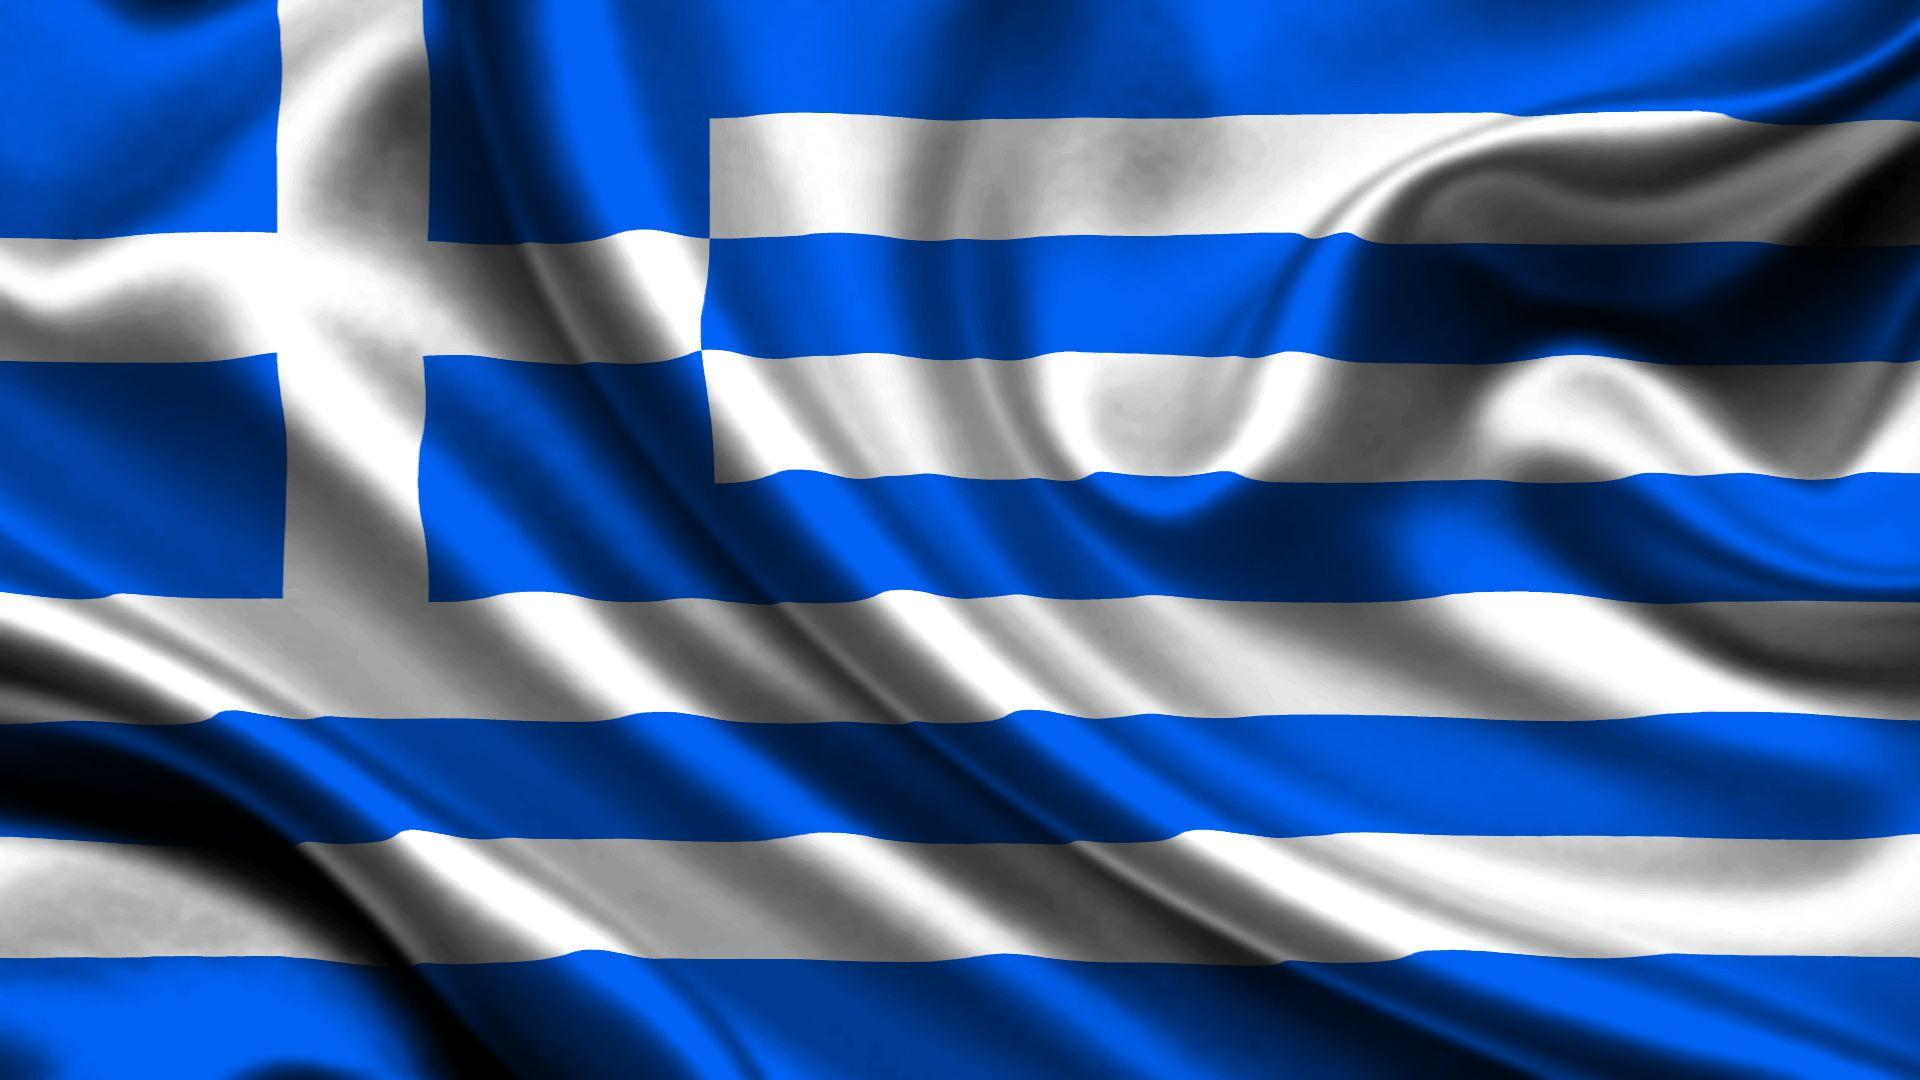 Wallpapers Greece Flag Cross Stripes 1920x1080